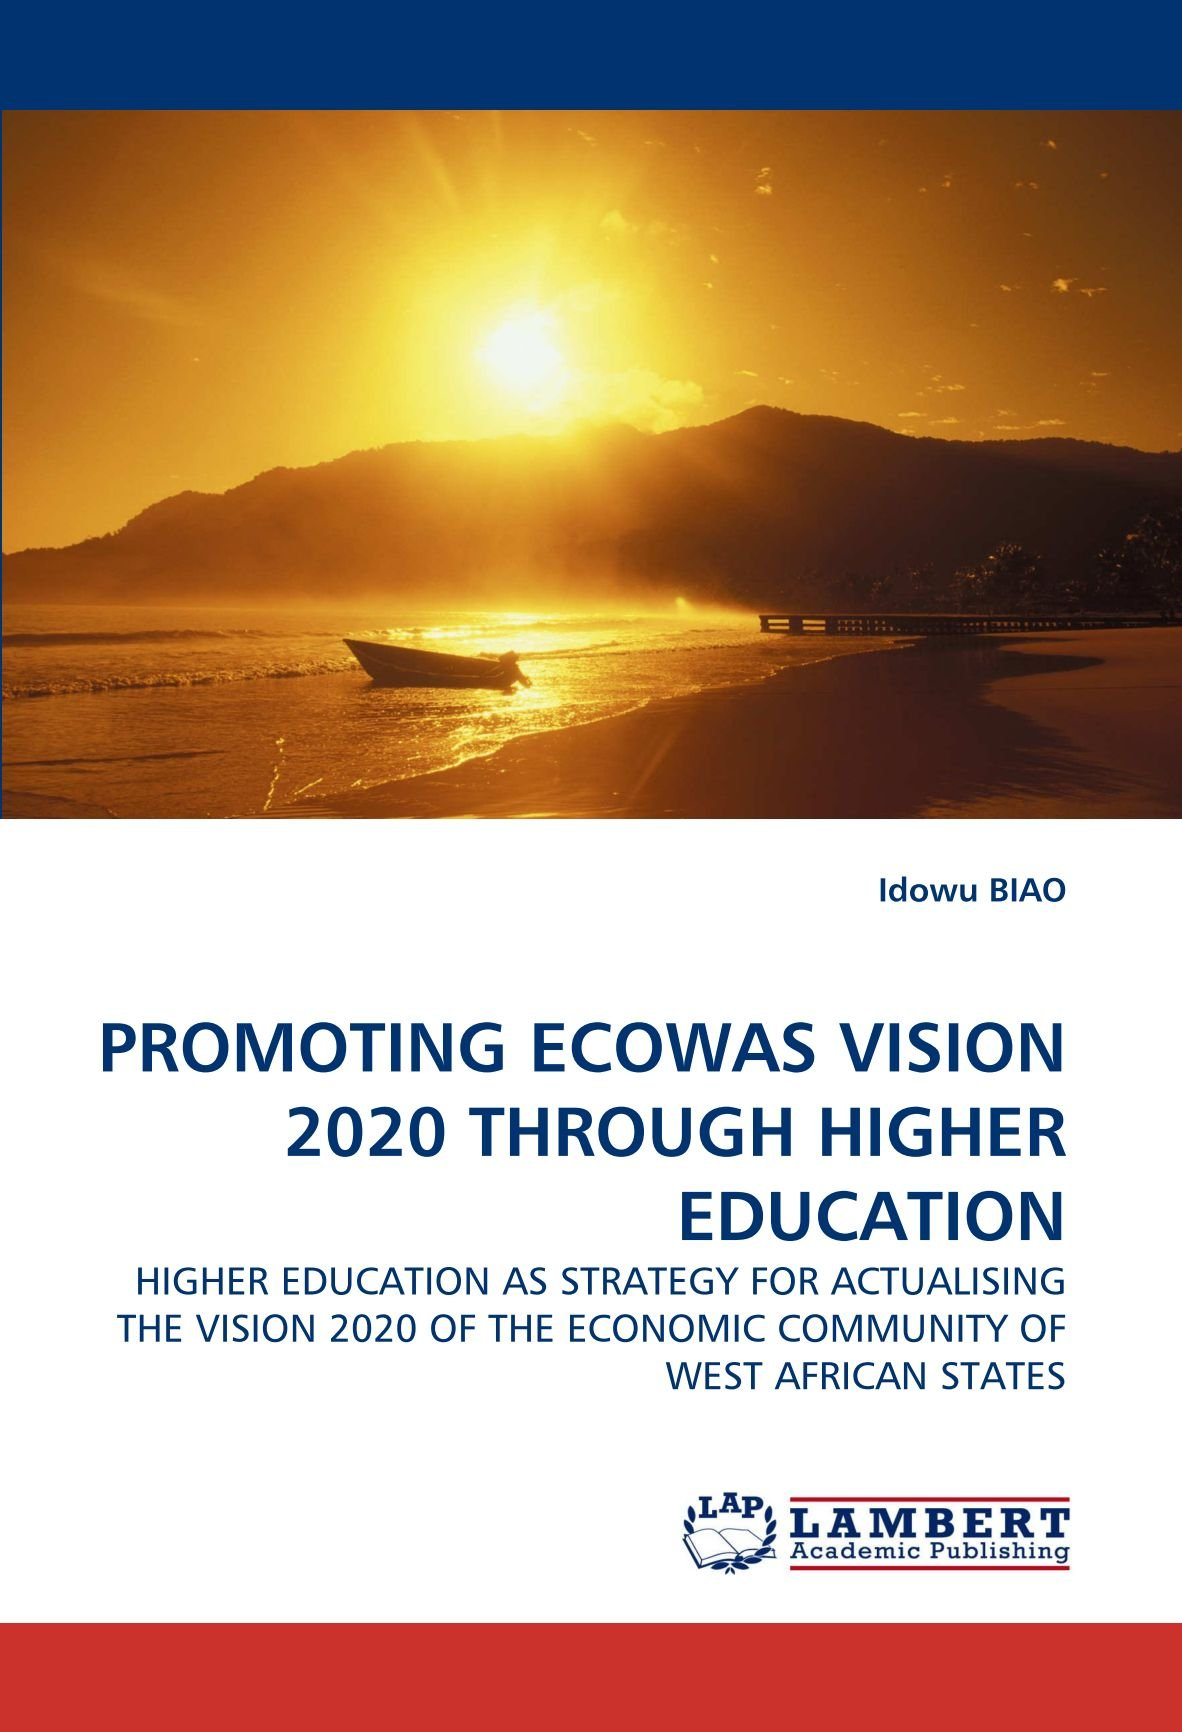 PROMOTING ECOWAS VISION 2020 THROUGH HIGHER EDUCATION: HIGHER EDUCATION AS STRATEGY FOR ACTUALISING THE VISION 2020 OF THE ECONOMIC COMMUNITY OF WEST AFRICAN STATES pdf